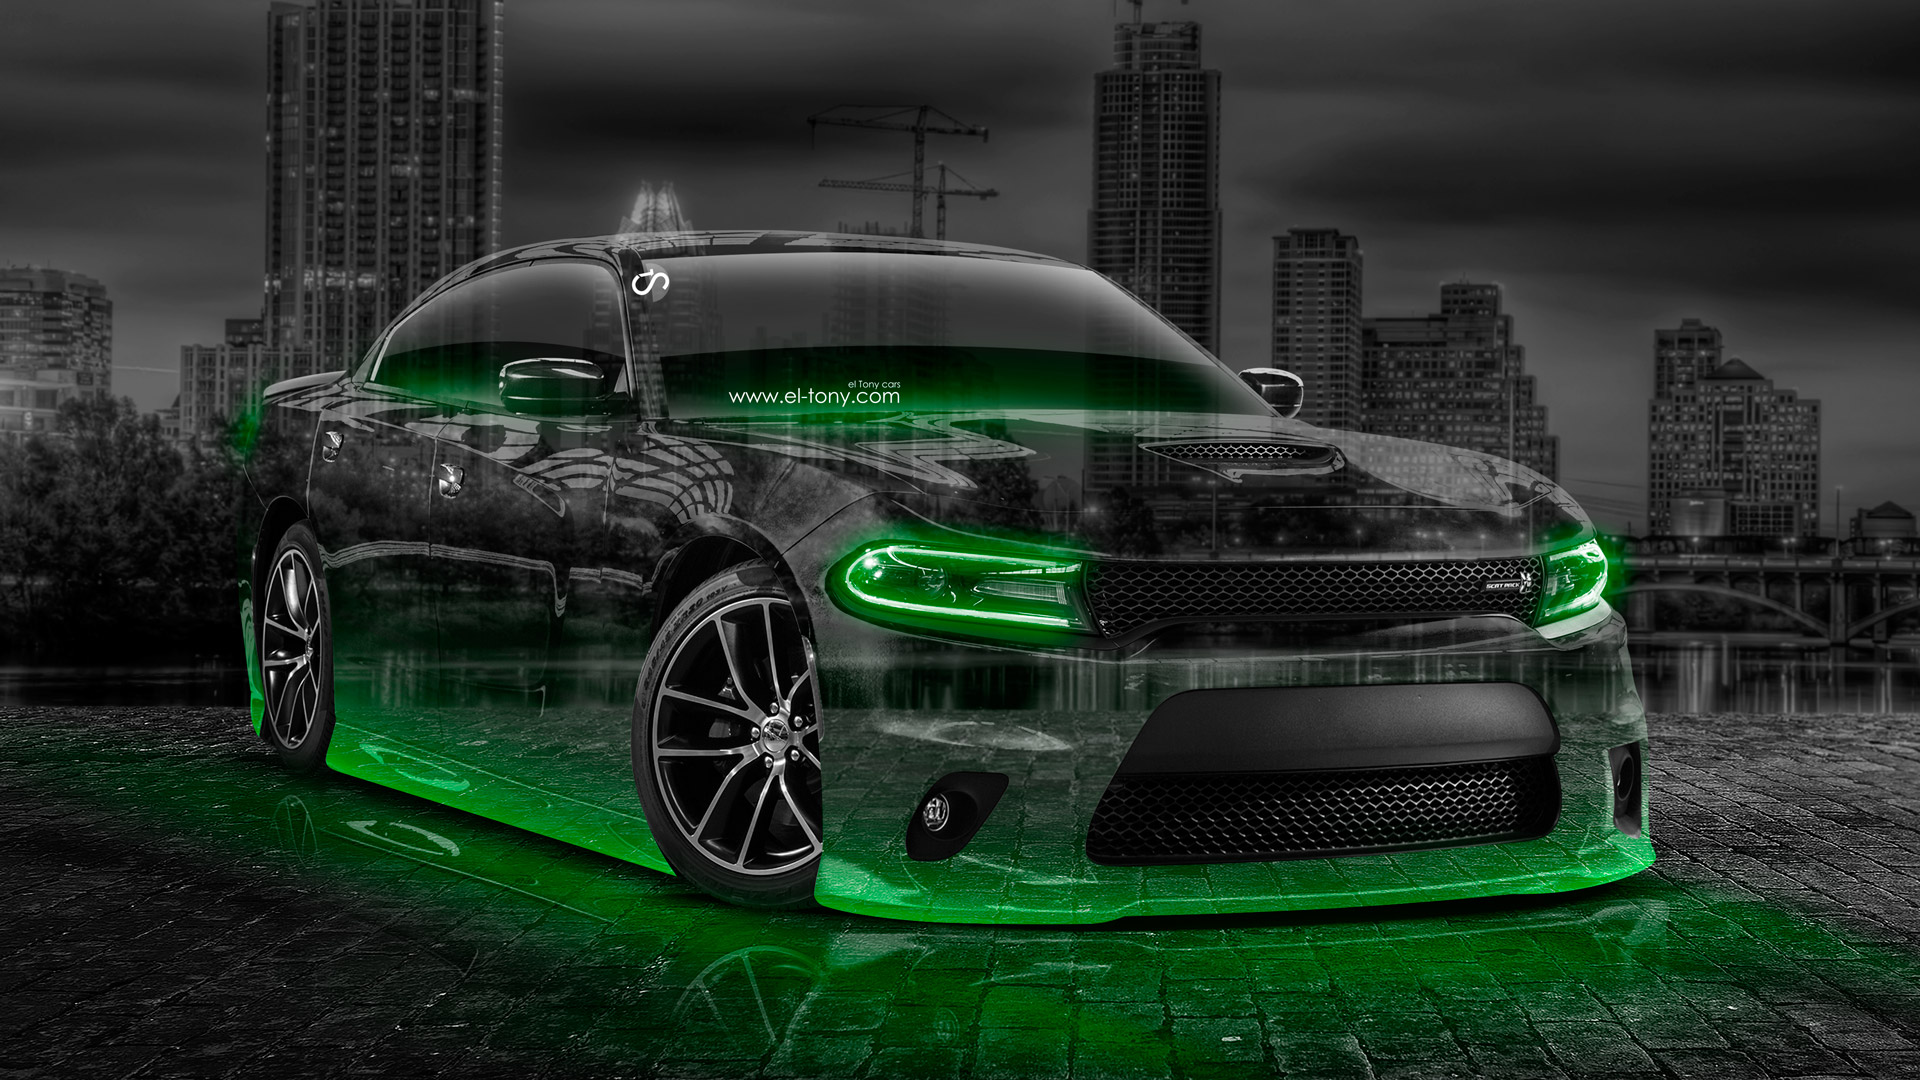 Dodge Charger Muscle Car Wallpaper Dodge Charger Rt Muscle Crystal City Car 2015 El Tony